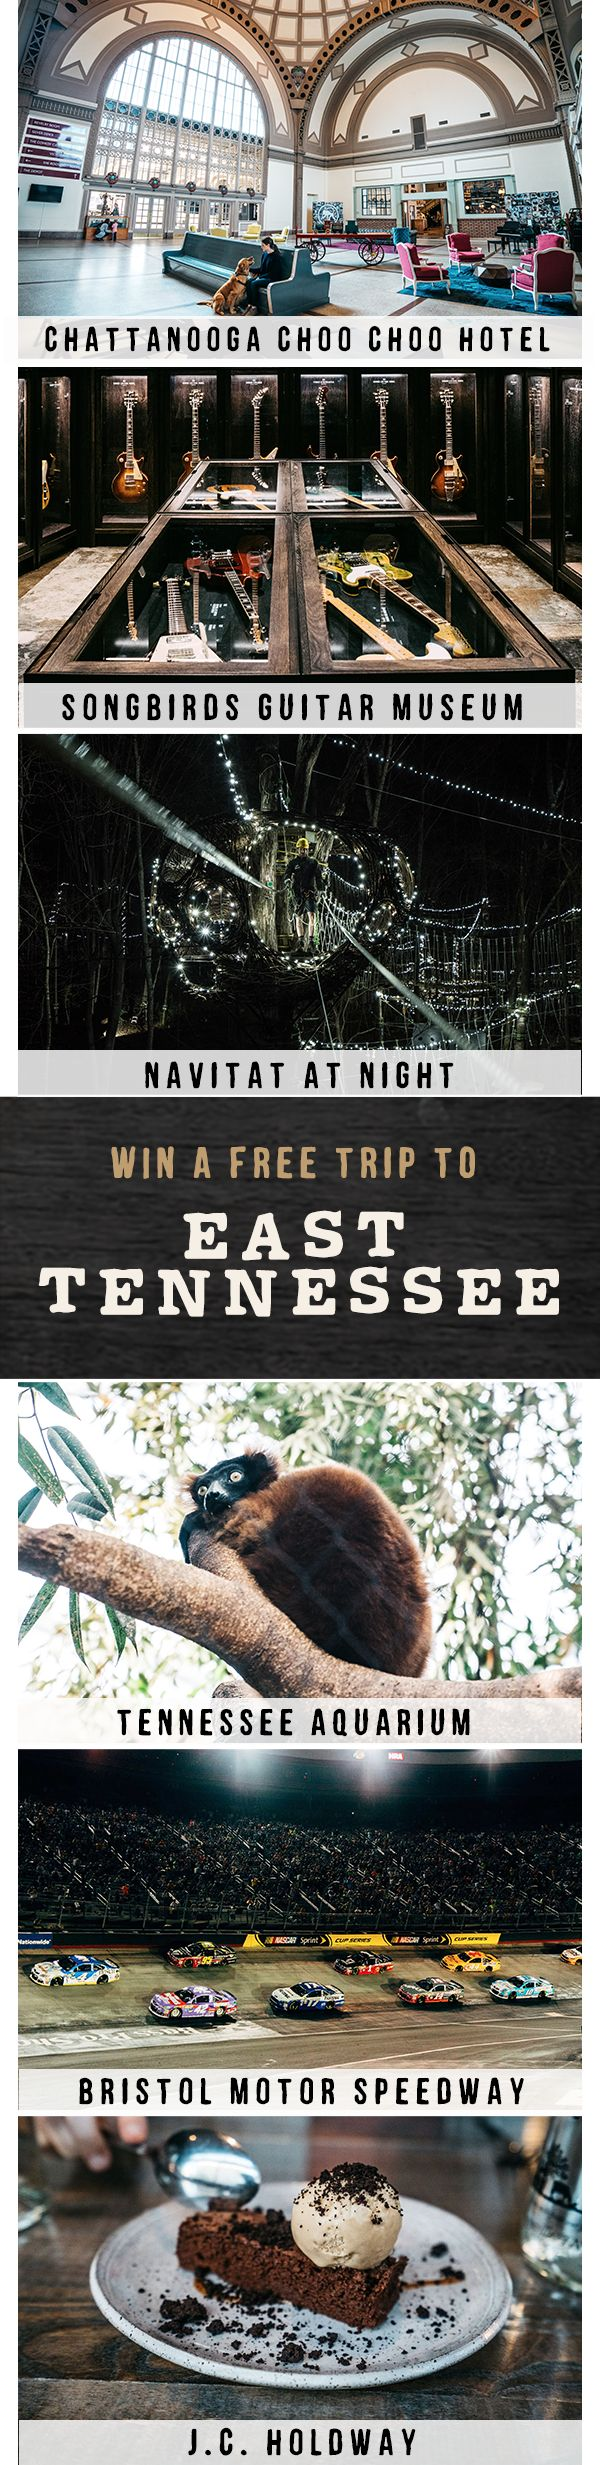 We're giving away a free trip to Tennessee. Simply match all the same amazing spots in this pin at TNVacation.com, and you'll be entered for a chance to win!